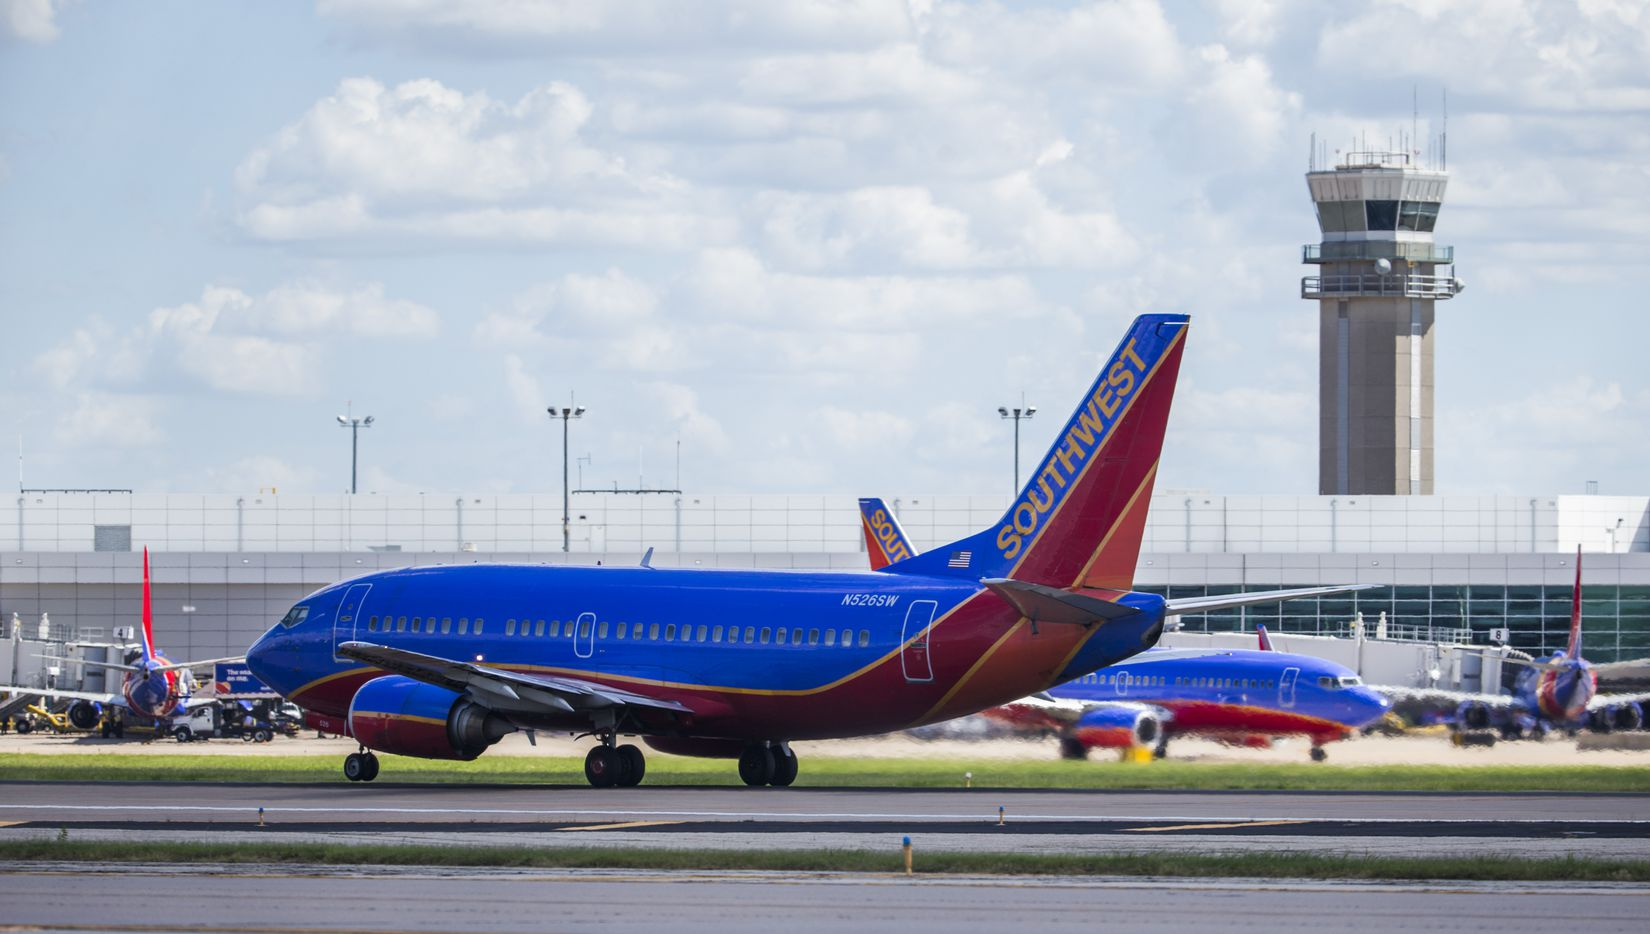 A Southwest Airlines airplane takes off as others remain parked at terminals while computer systems recover from a system-wide crash on Wednesday, July 20, 2016 at Dallas Love Field Airport in Dallas. (Ashley Landis/The Dallas Morning News)